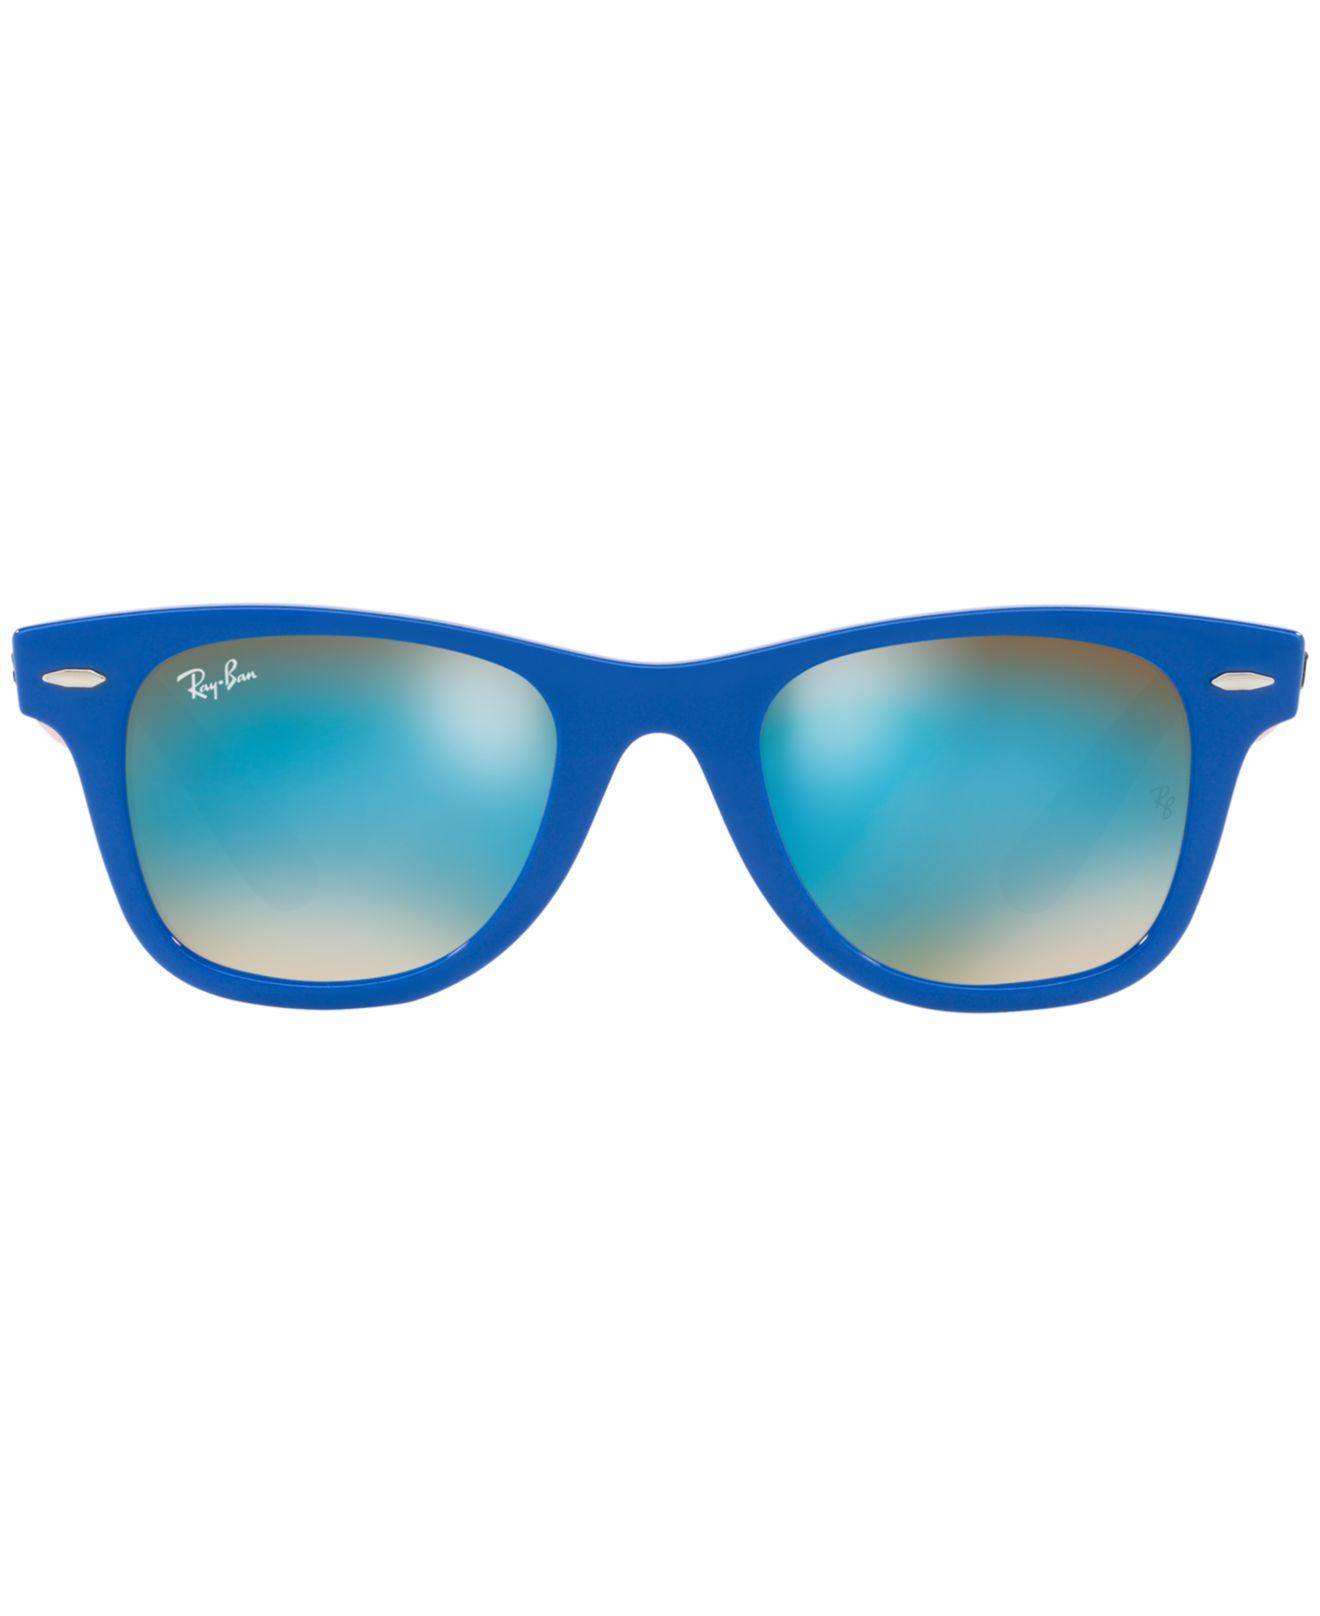 a3bd850117 Lyst - Ray-Ban Junior Sunglasses